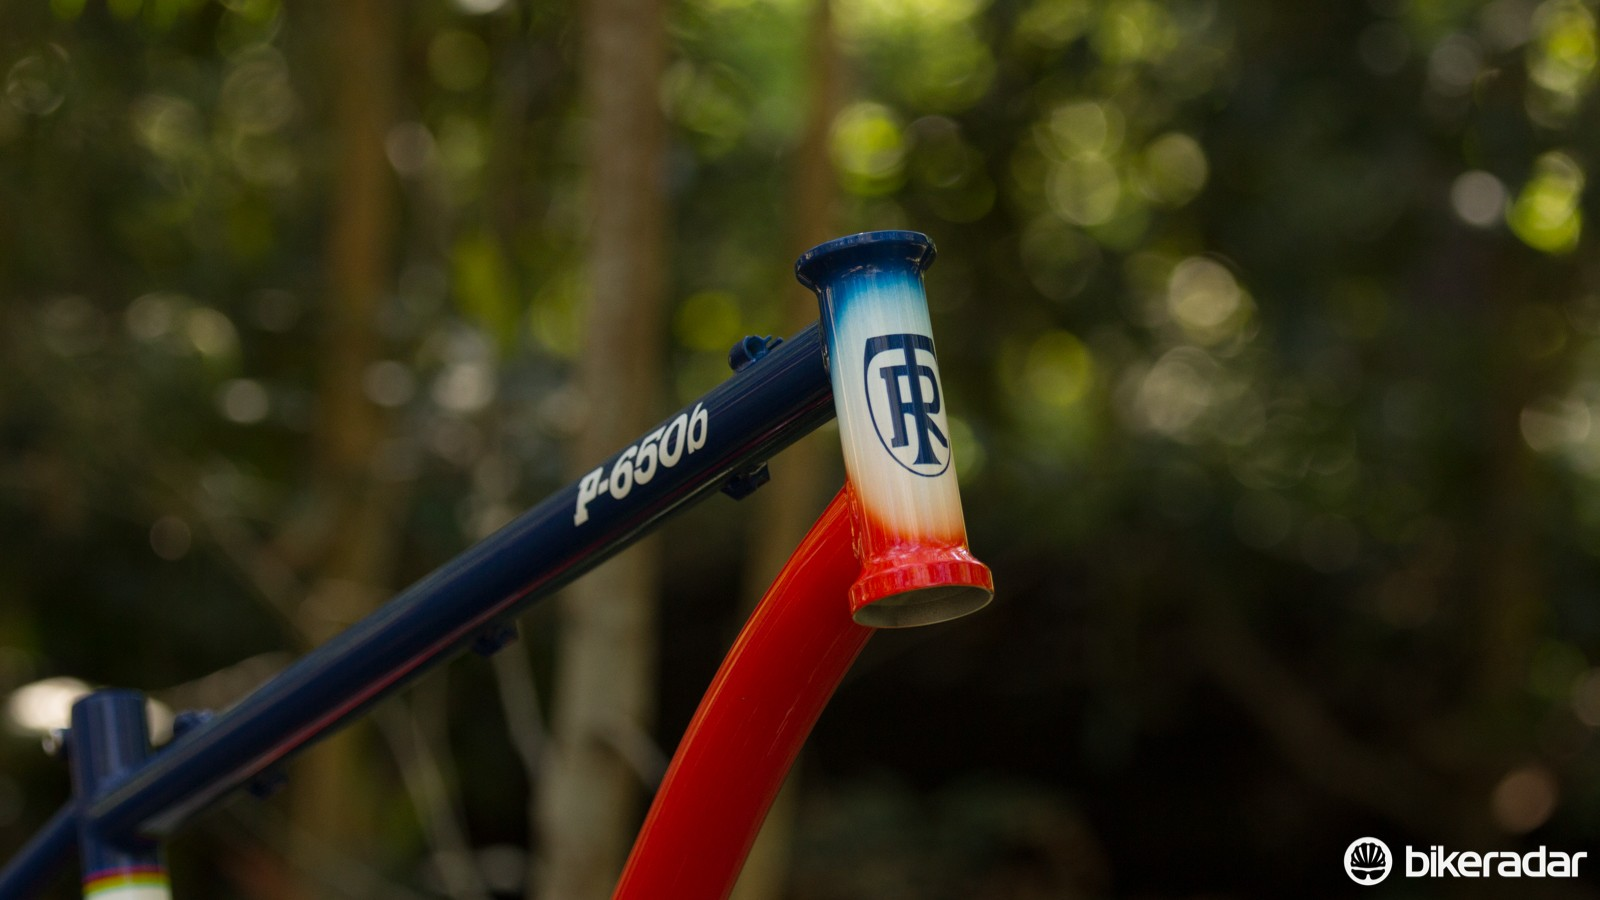 For 2015, the P-650b gains a tapered head-tube. Our 2014 version uses a straight 1 1/8in steerer